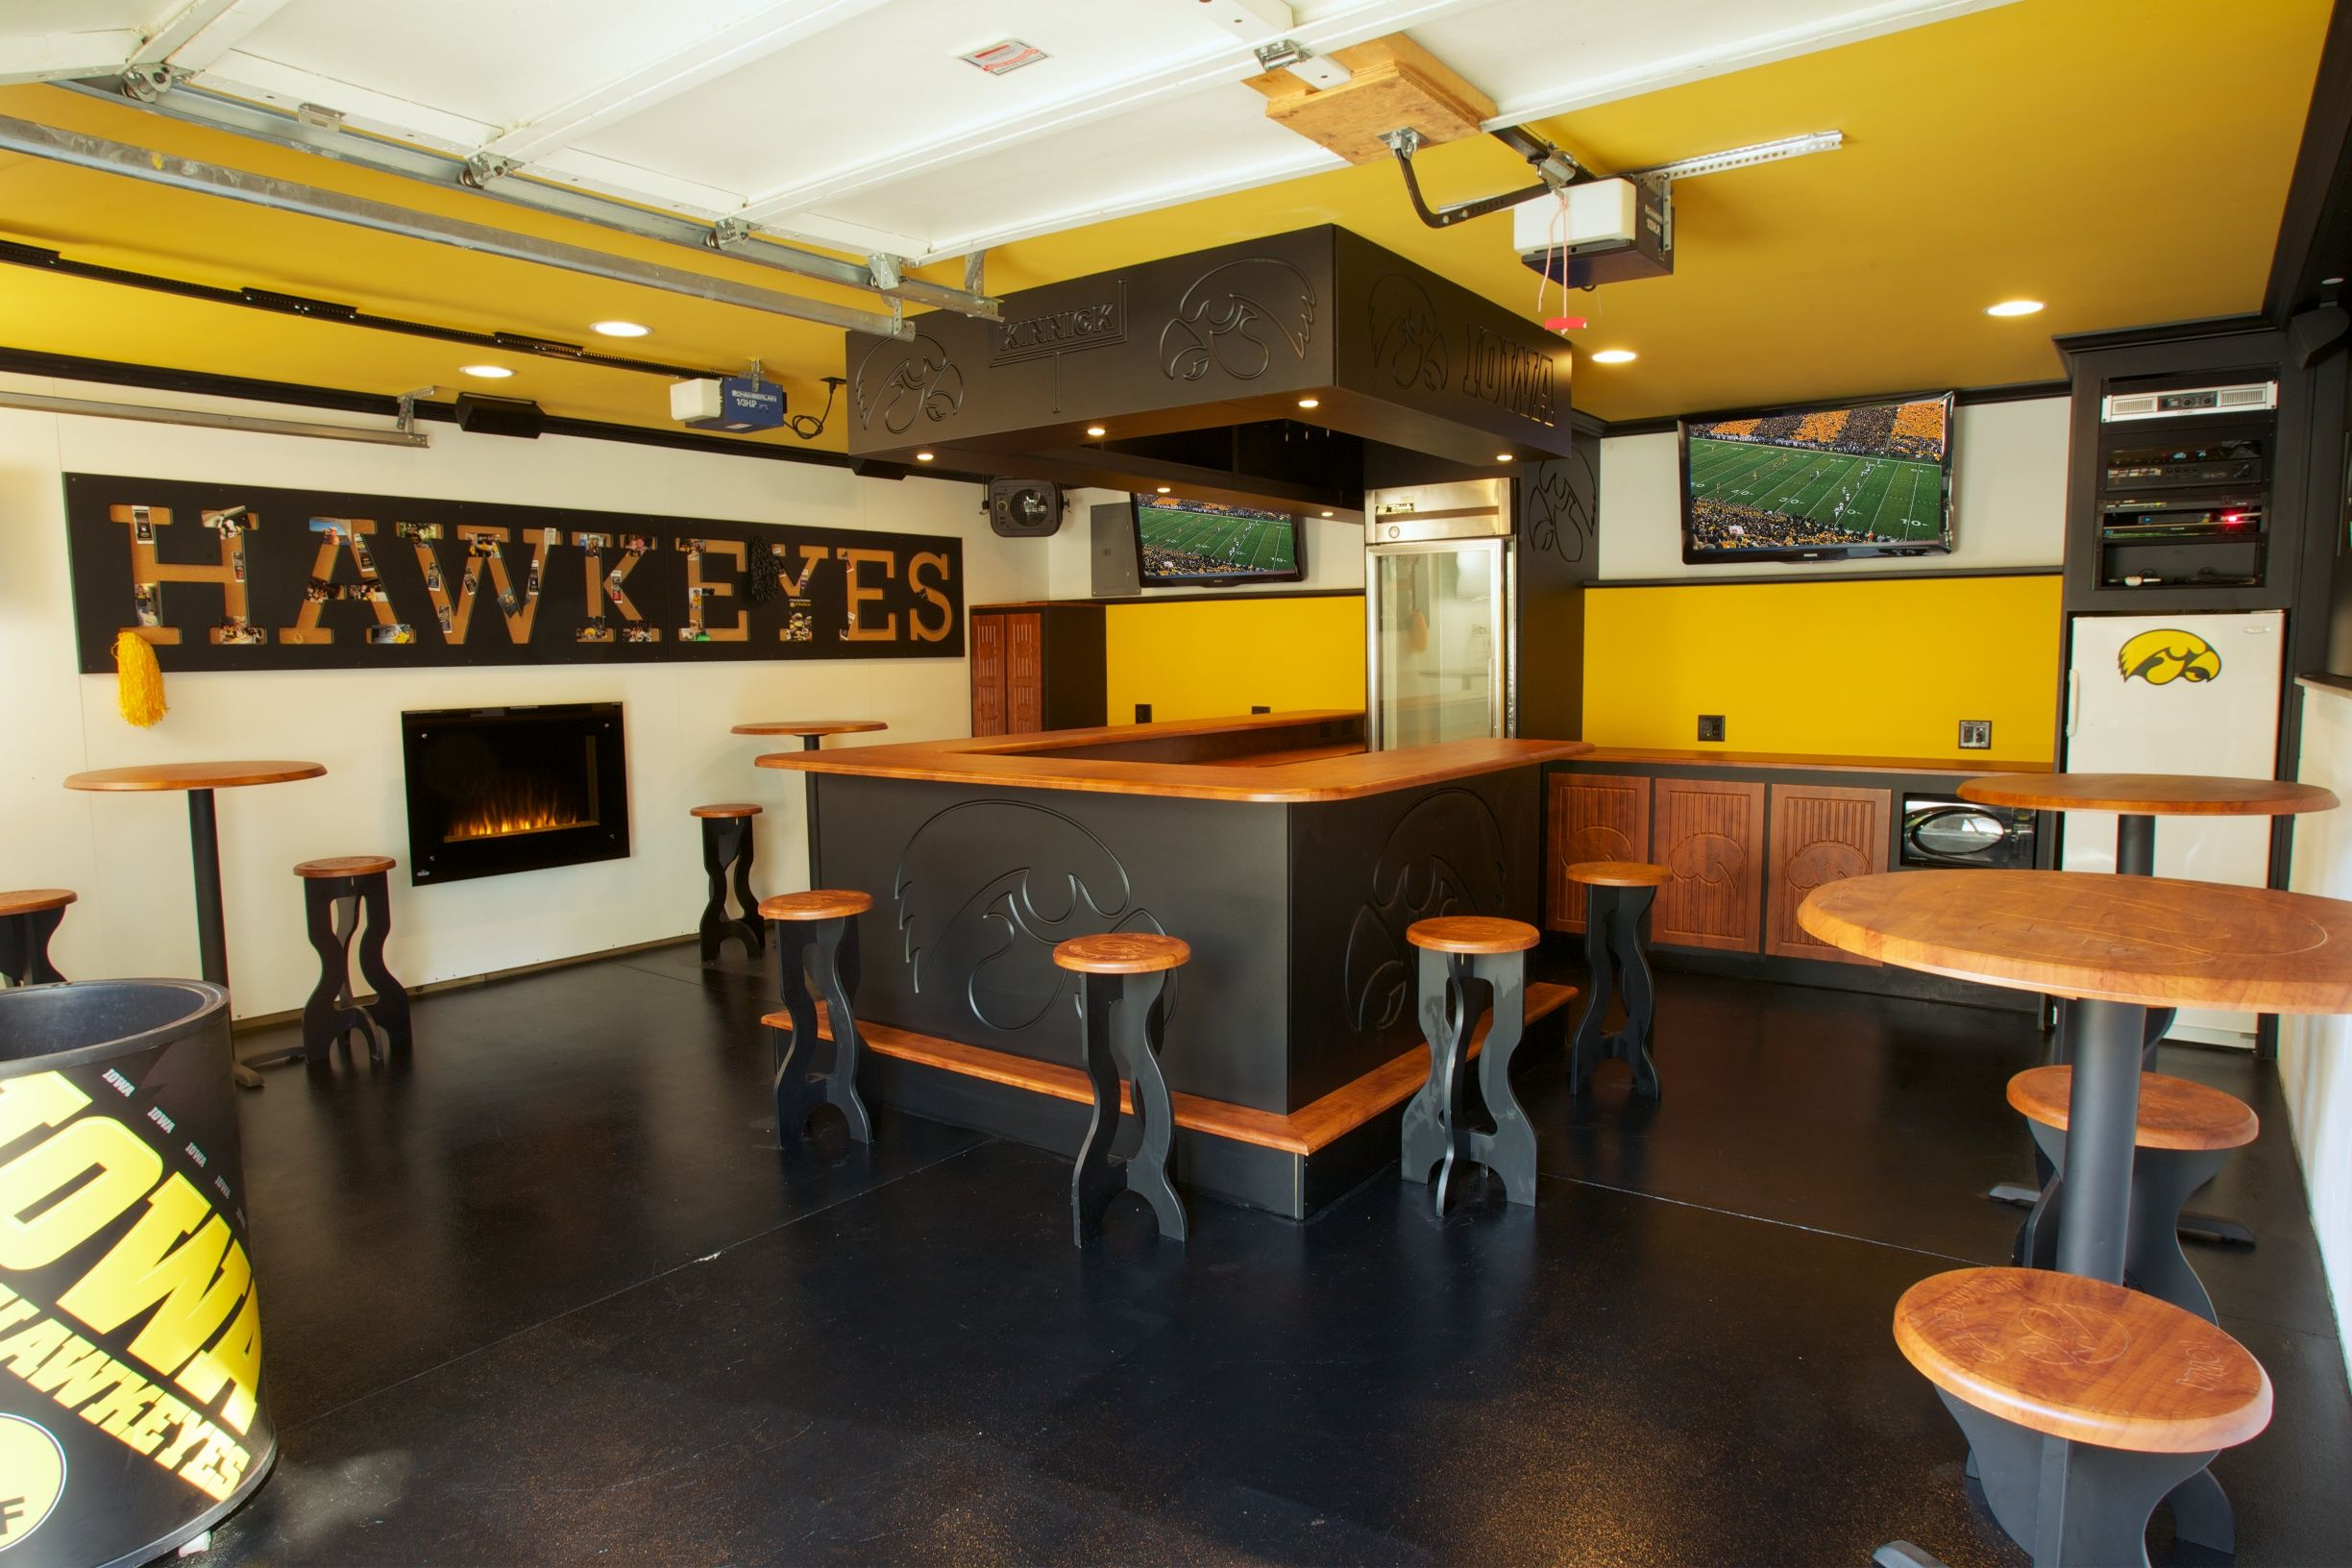 garage product the story behind my hawkeye tailgating man cave cool craft pinterest. Black Bedroom Furniture Sets. Home Design Ideas